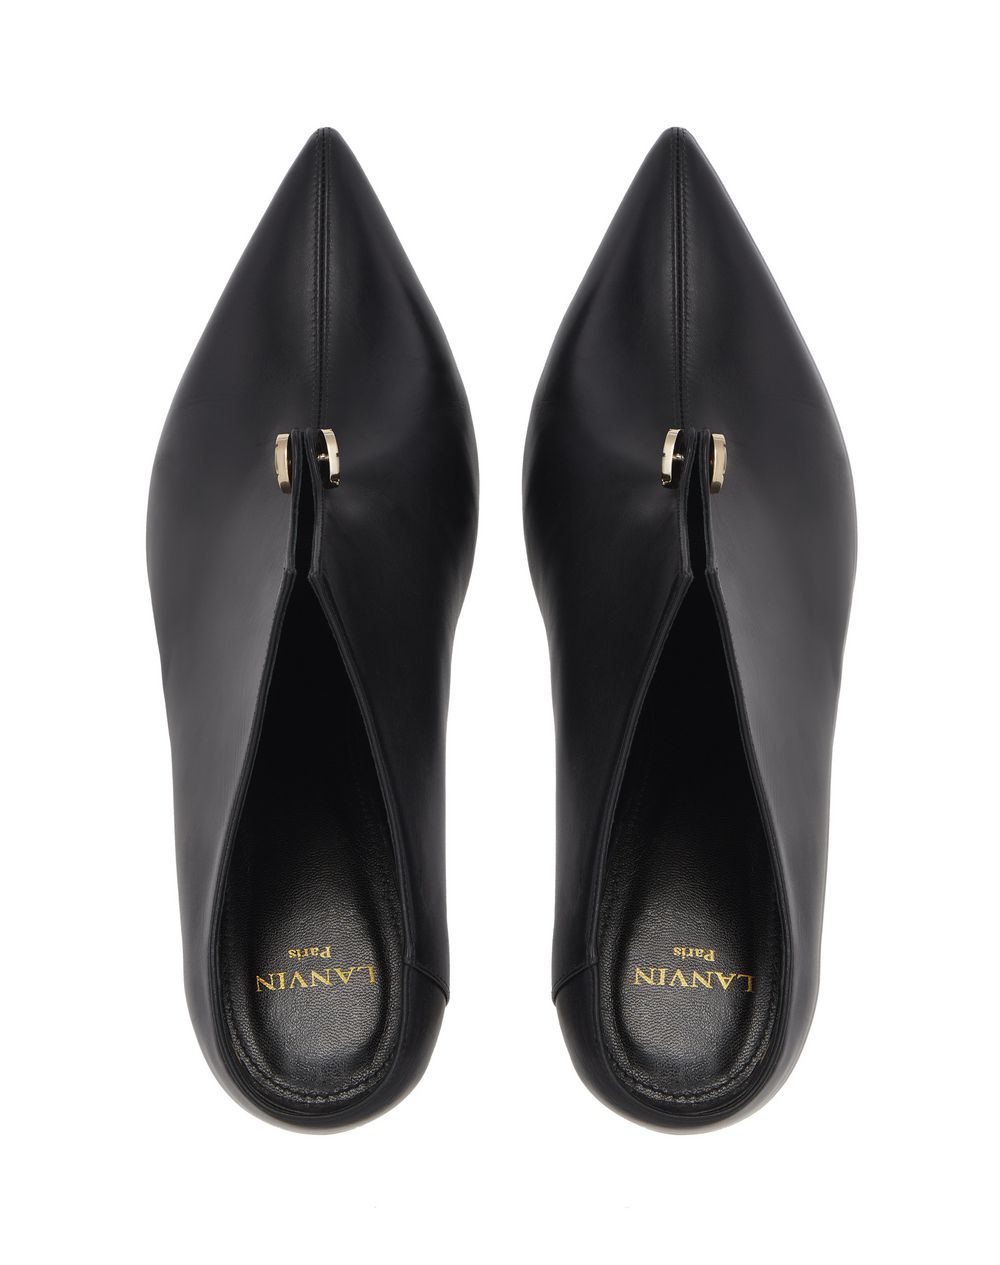 BLACK PIERCING HIGH-HEELED MULE - Lanvin